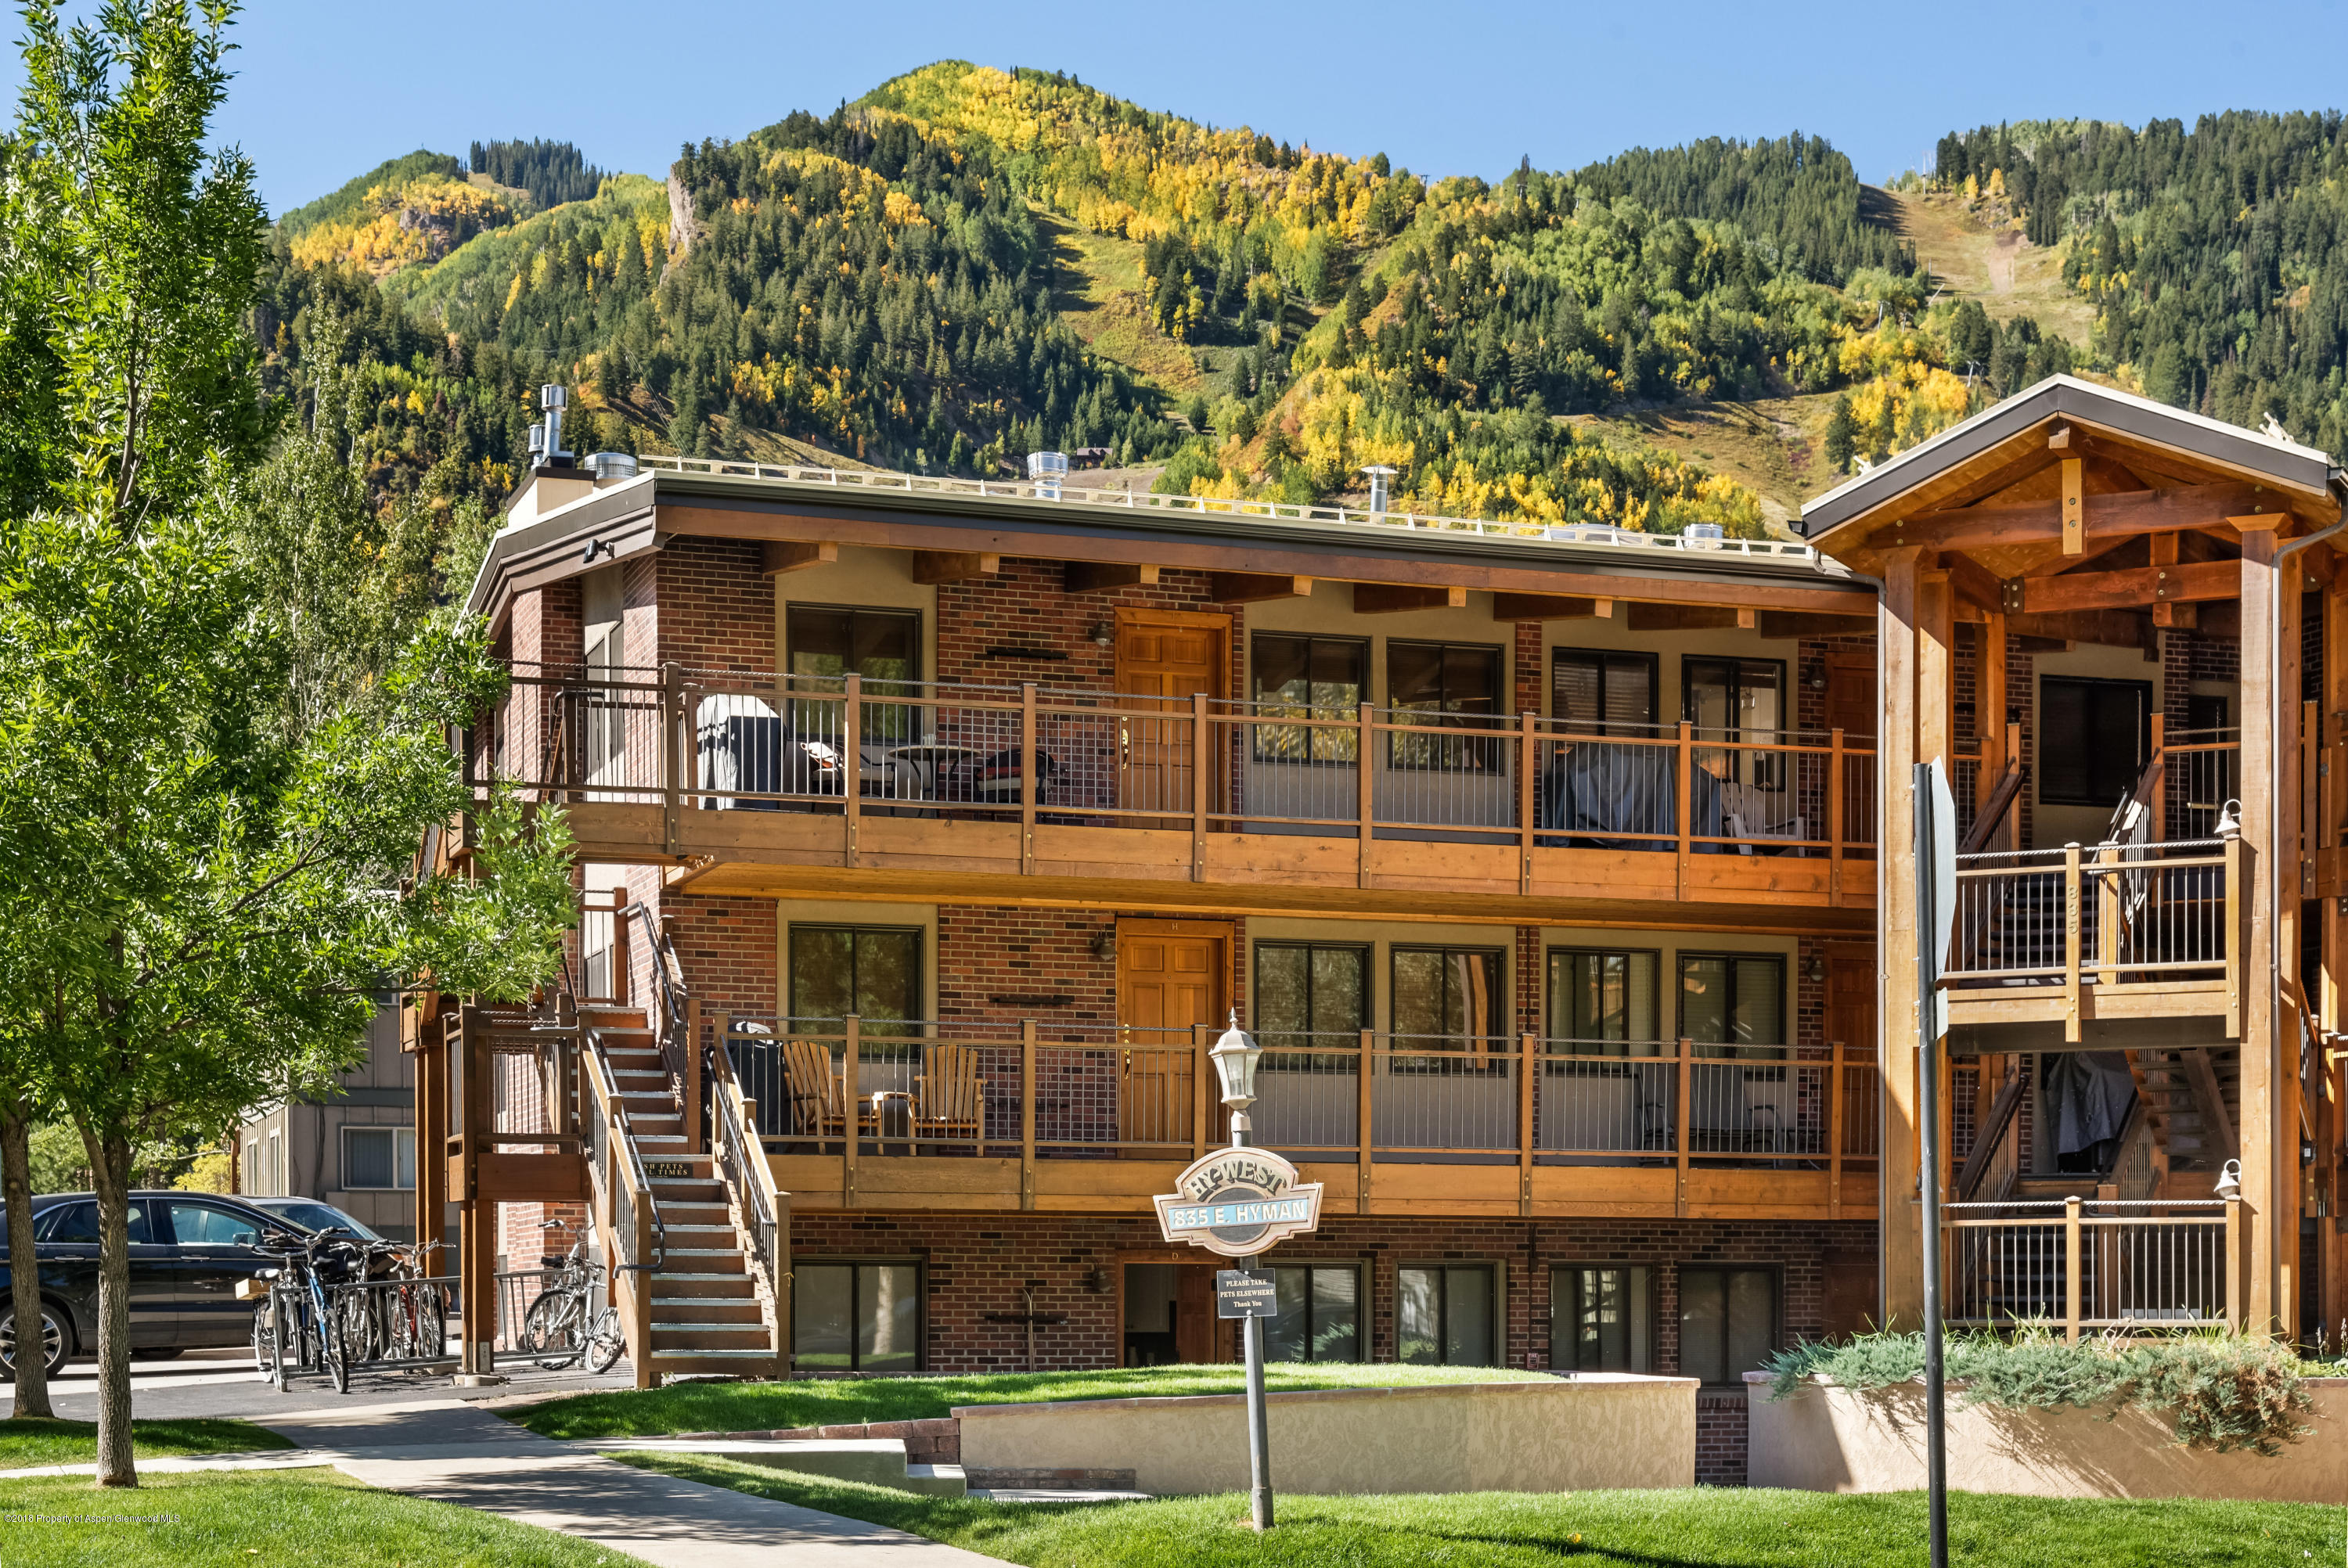 835 E Hyman Avenue, Unit D - Aspen, Colorado